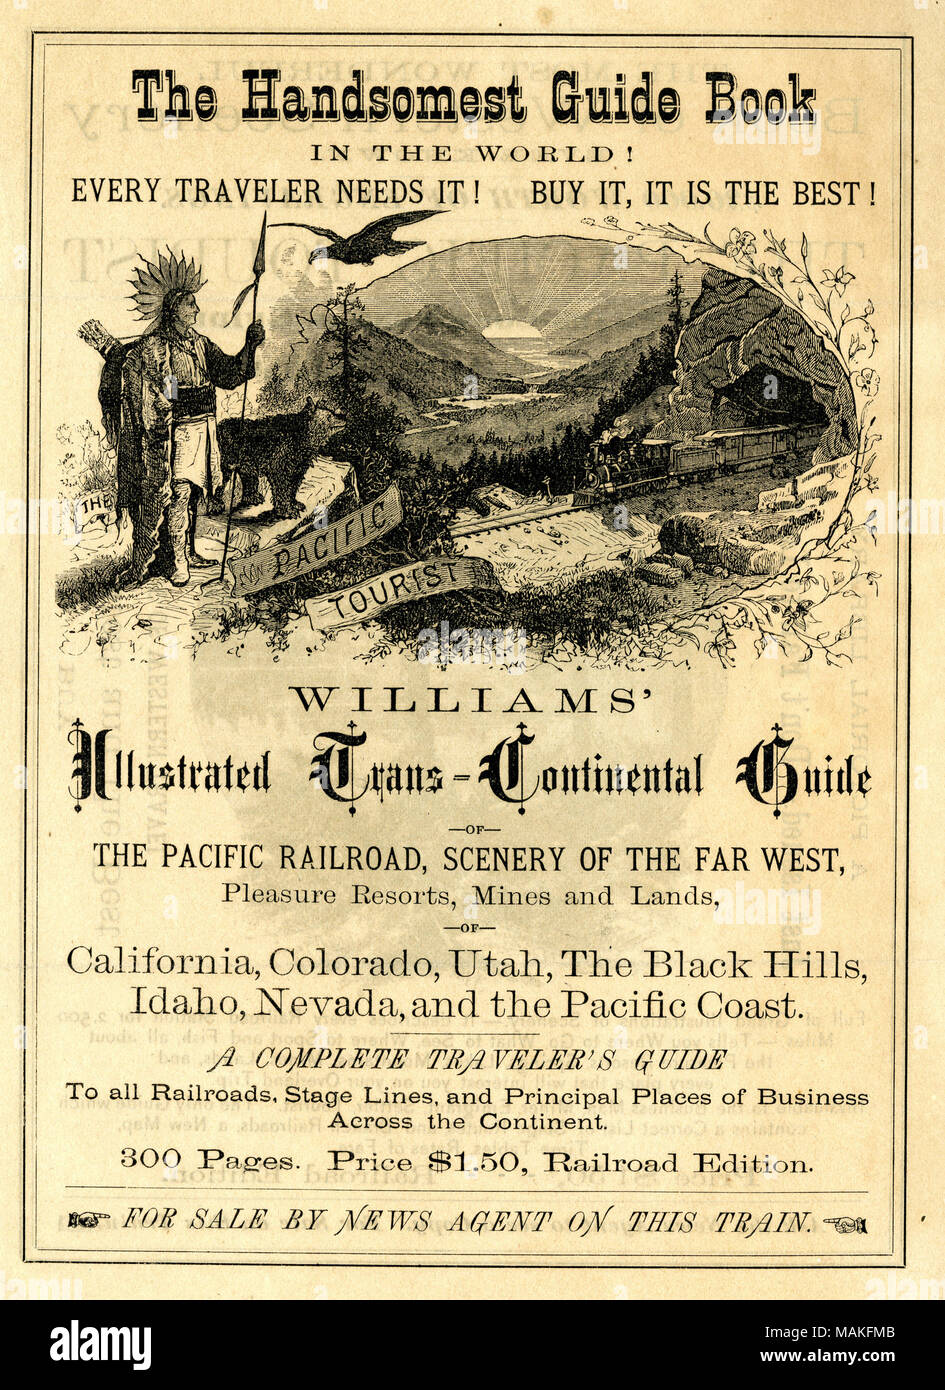 Advertises the sale of The Pacific Tourist, Williams